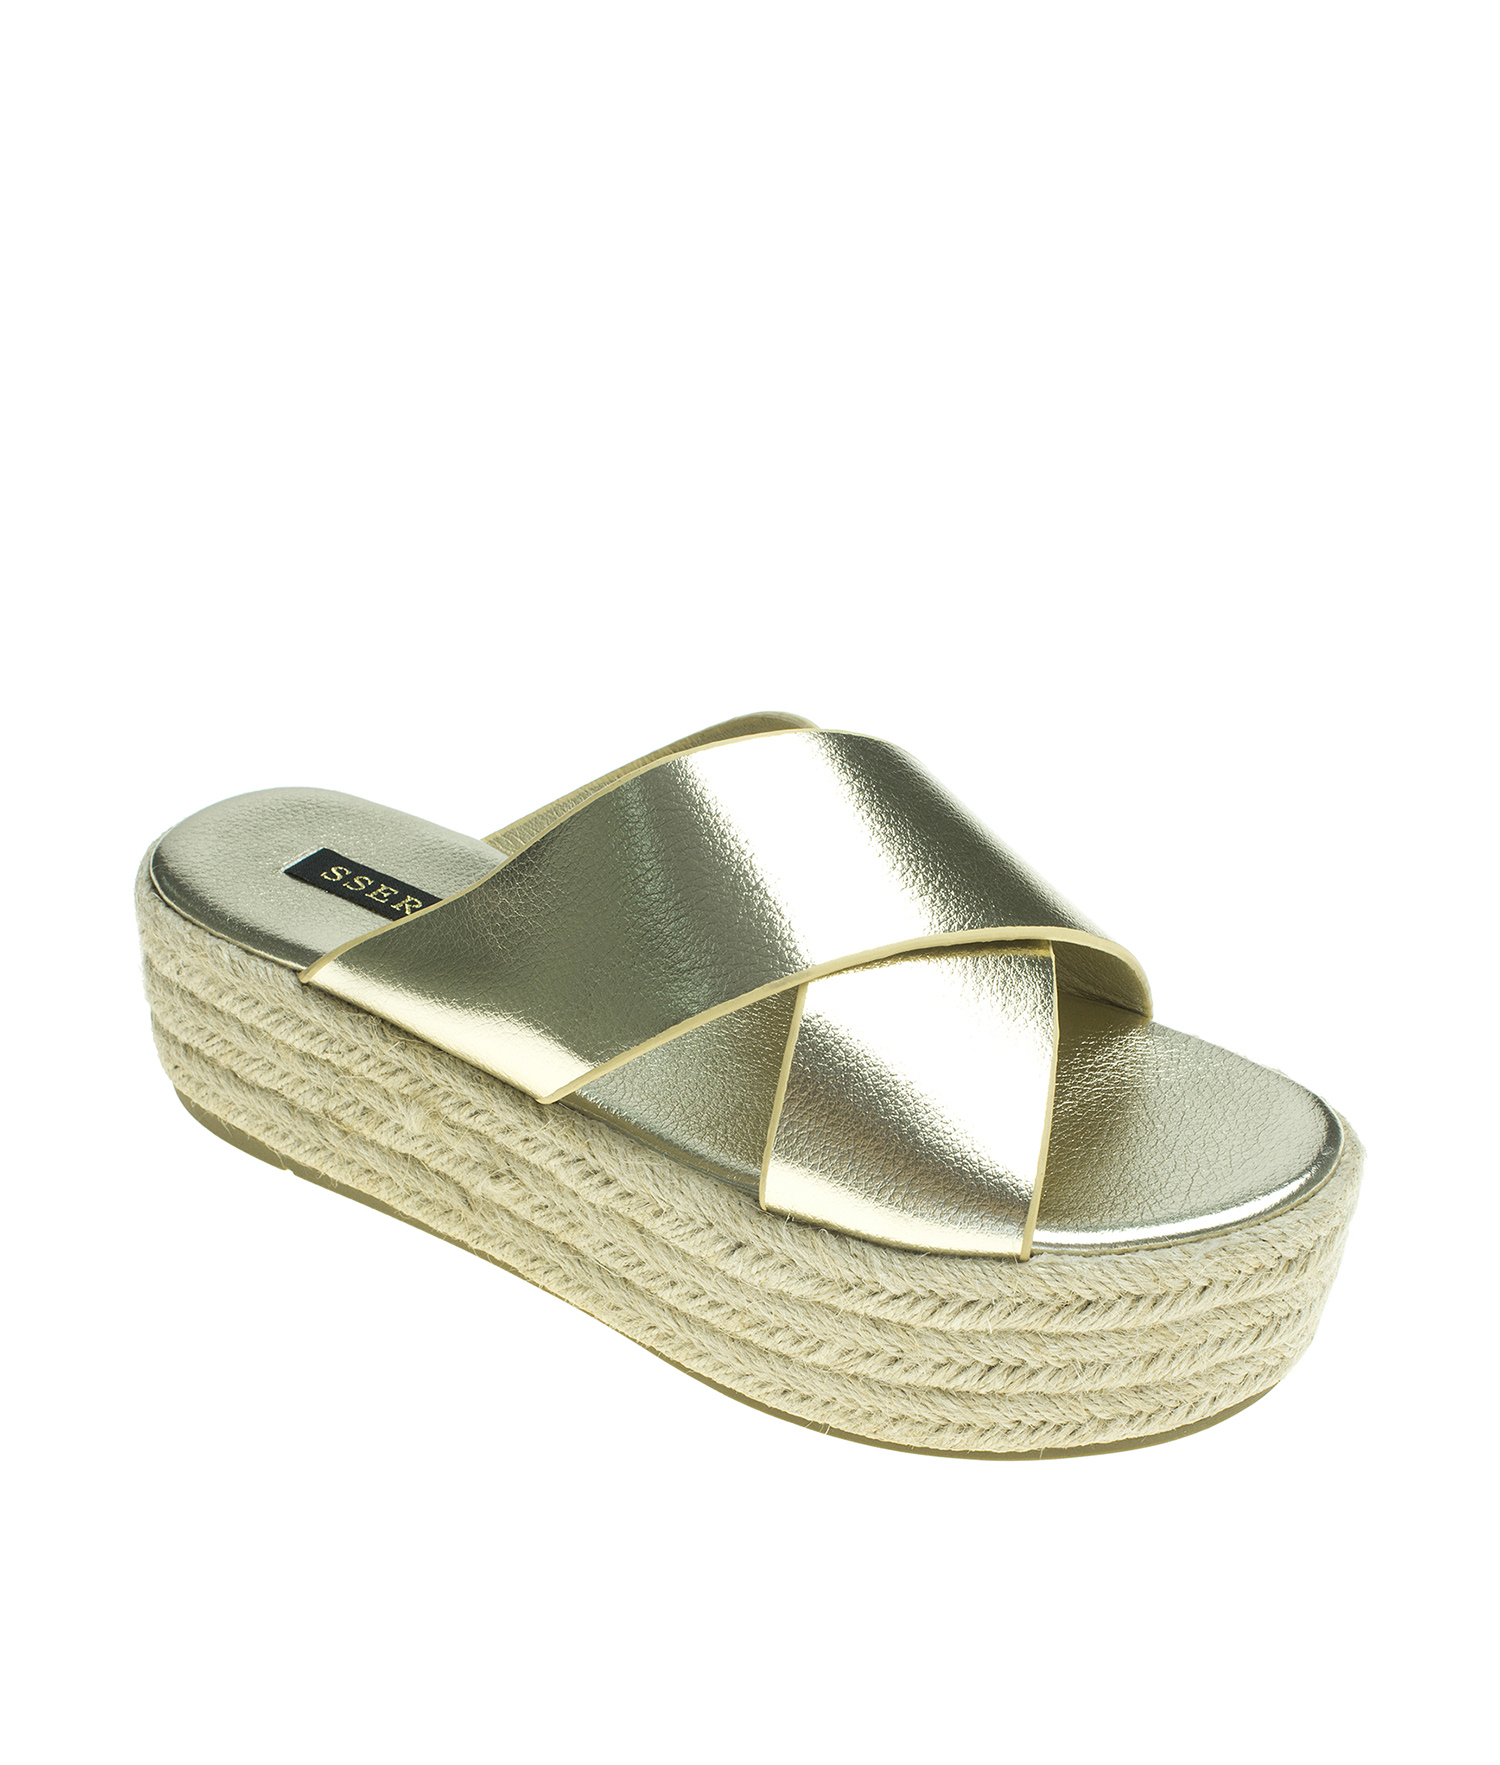 165e829dd71d AnnaKastle Womens Metallic Criss Cross Strap Espadrille Platform Slide Gold